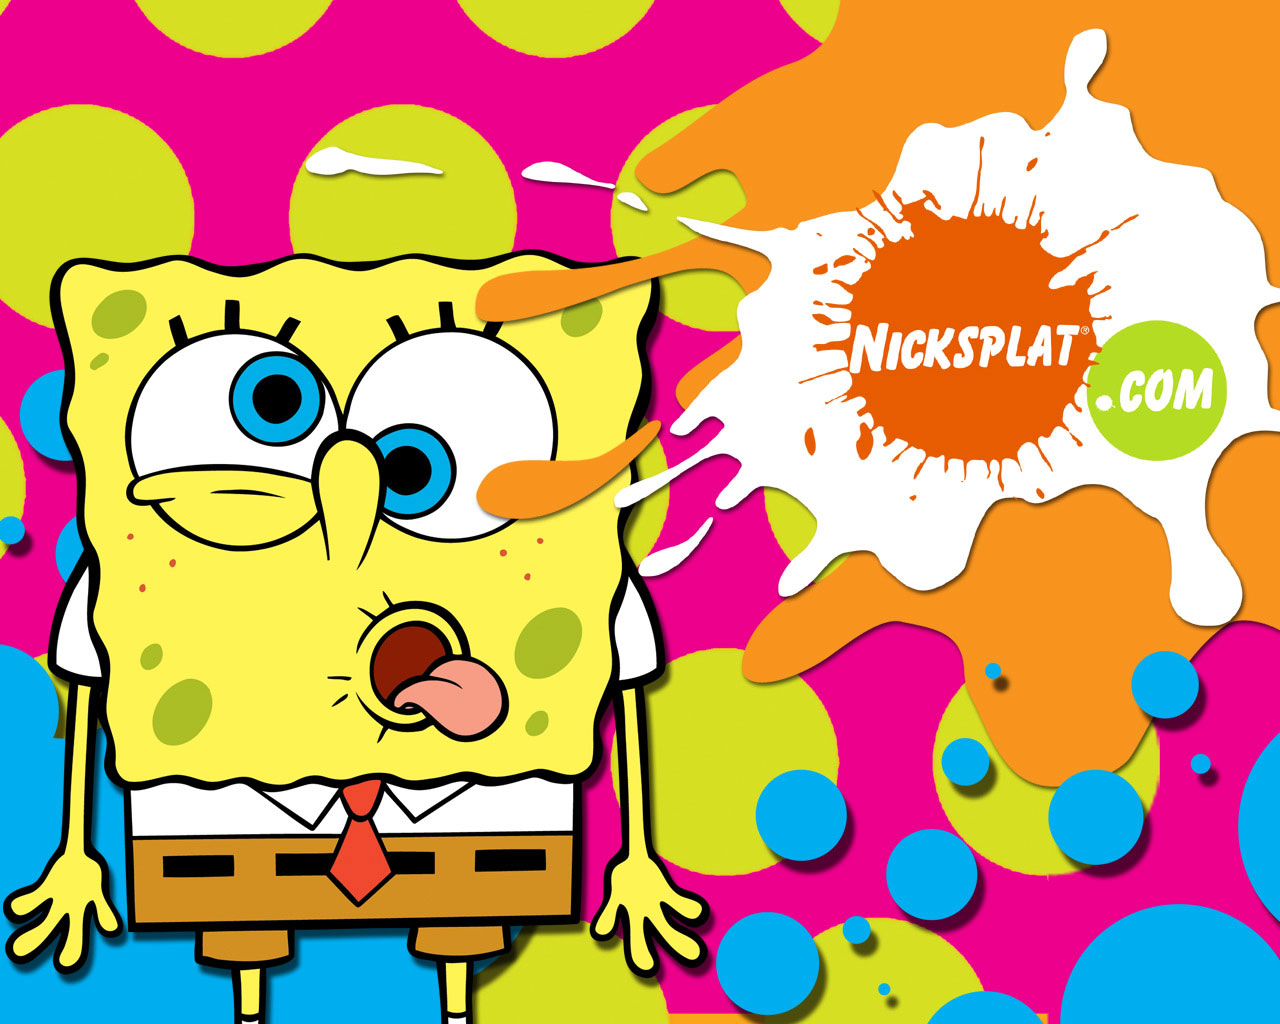 WALLPAPER ANDROID IPHONE Wallpaper Spongebob Squarepants